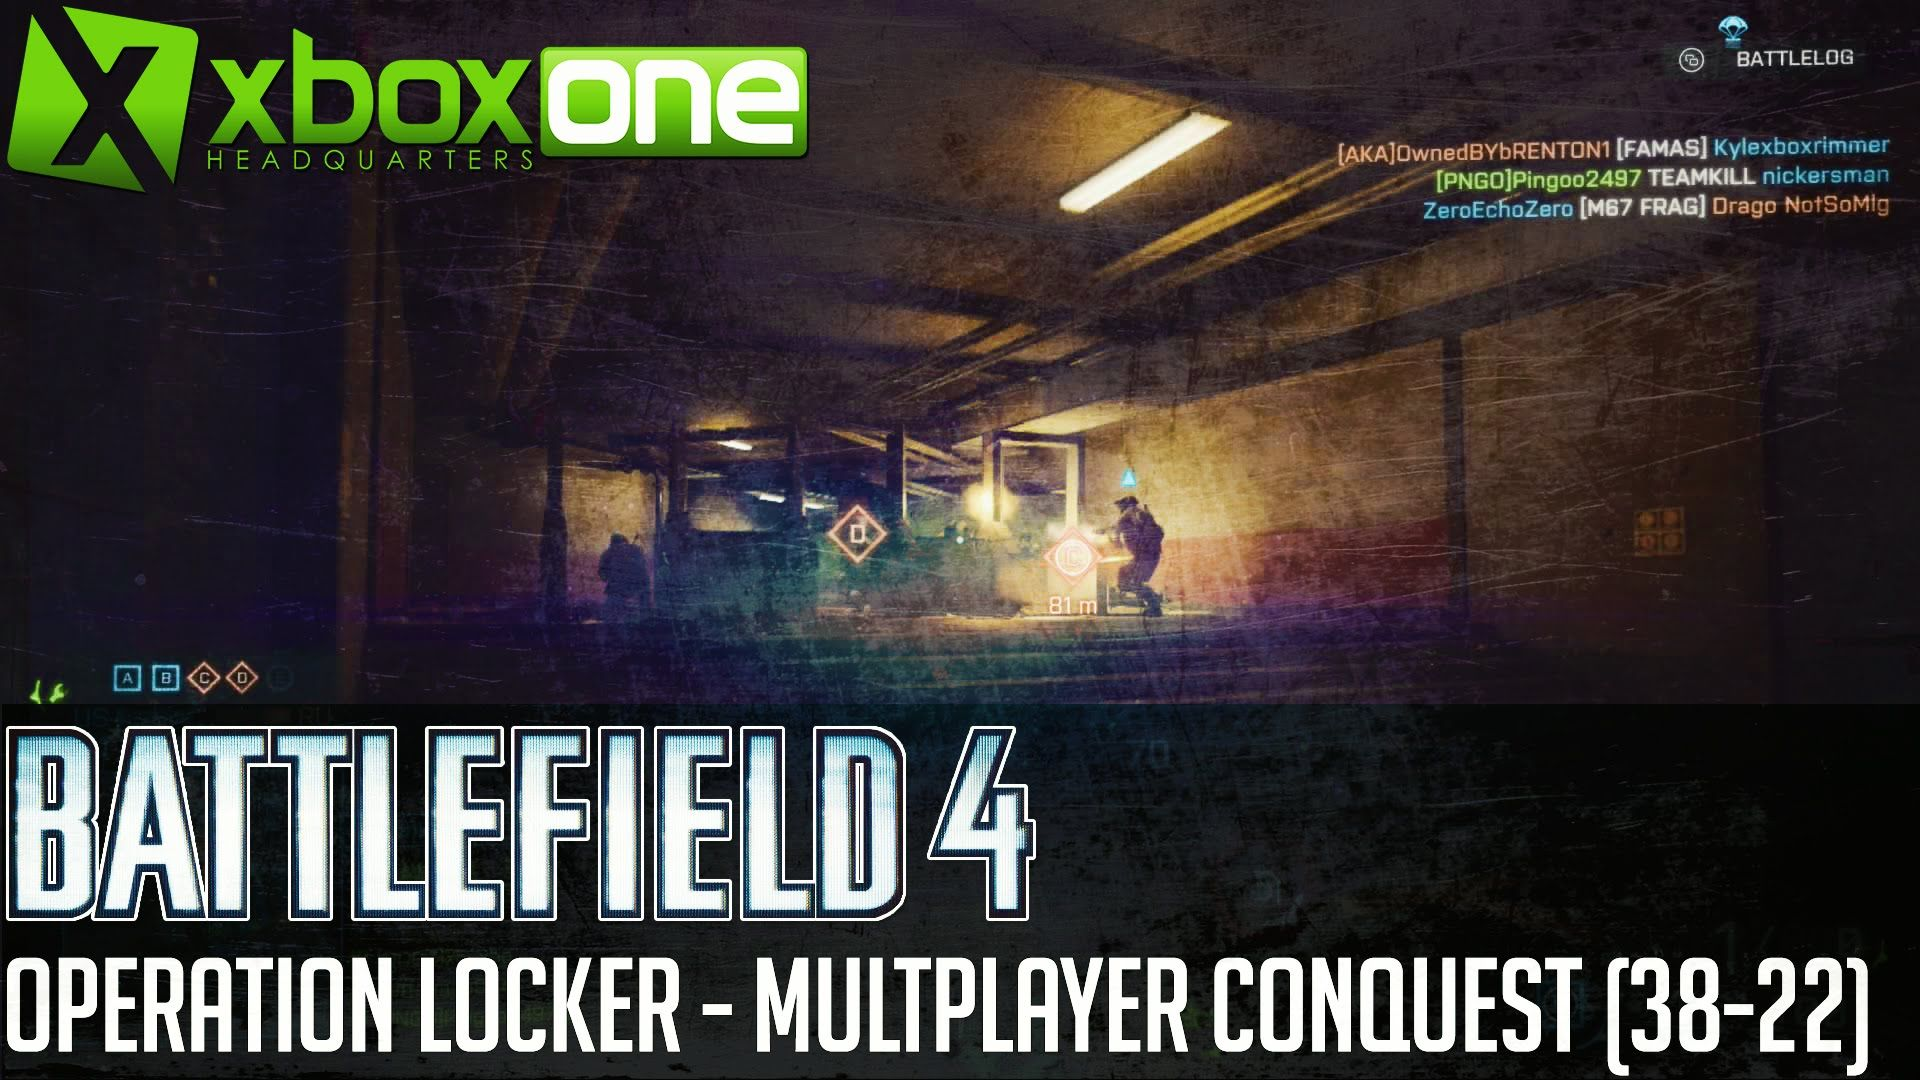 Check Out Some Battlefield 4 Operation Locker 64 Player